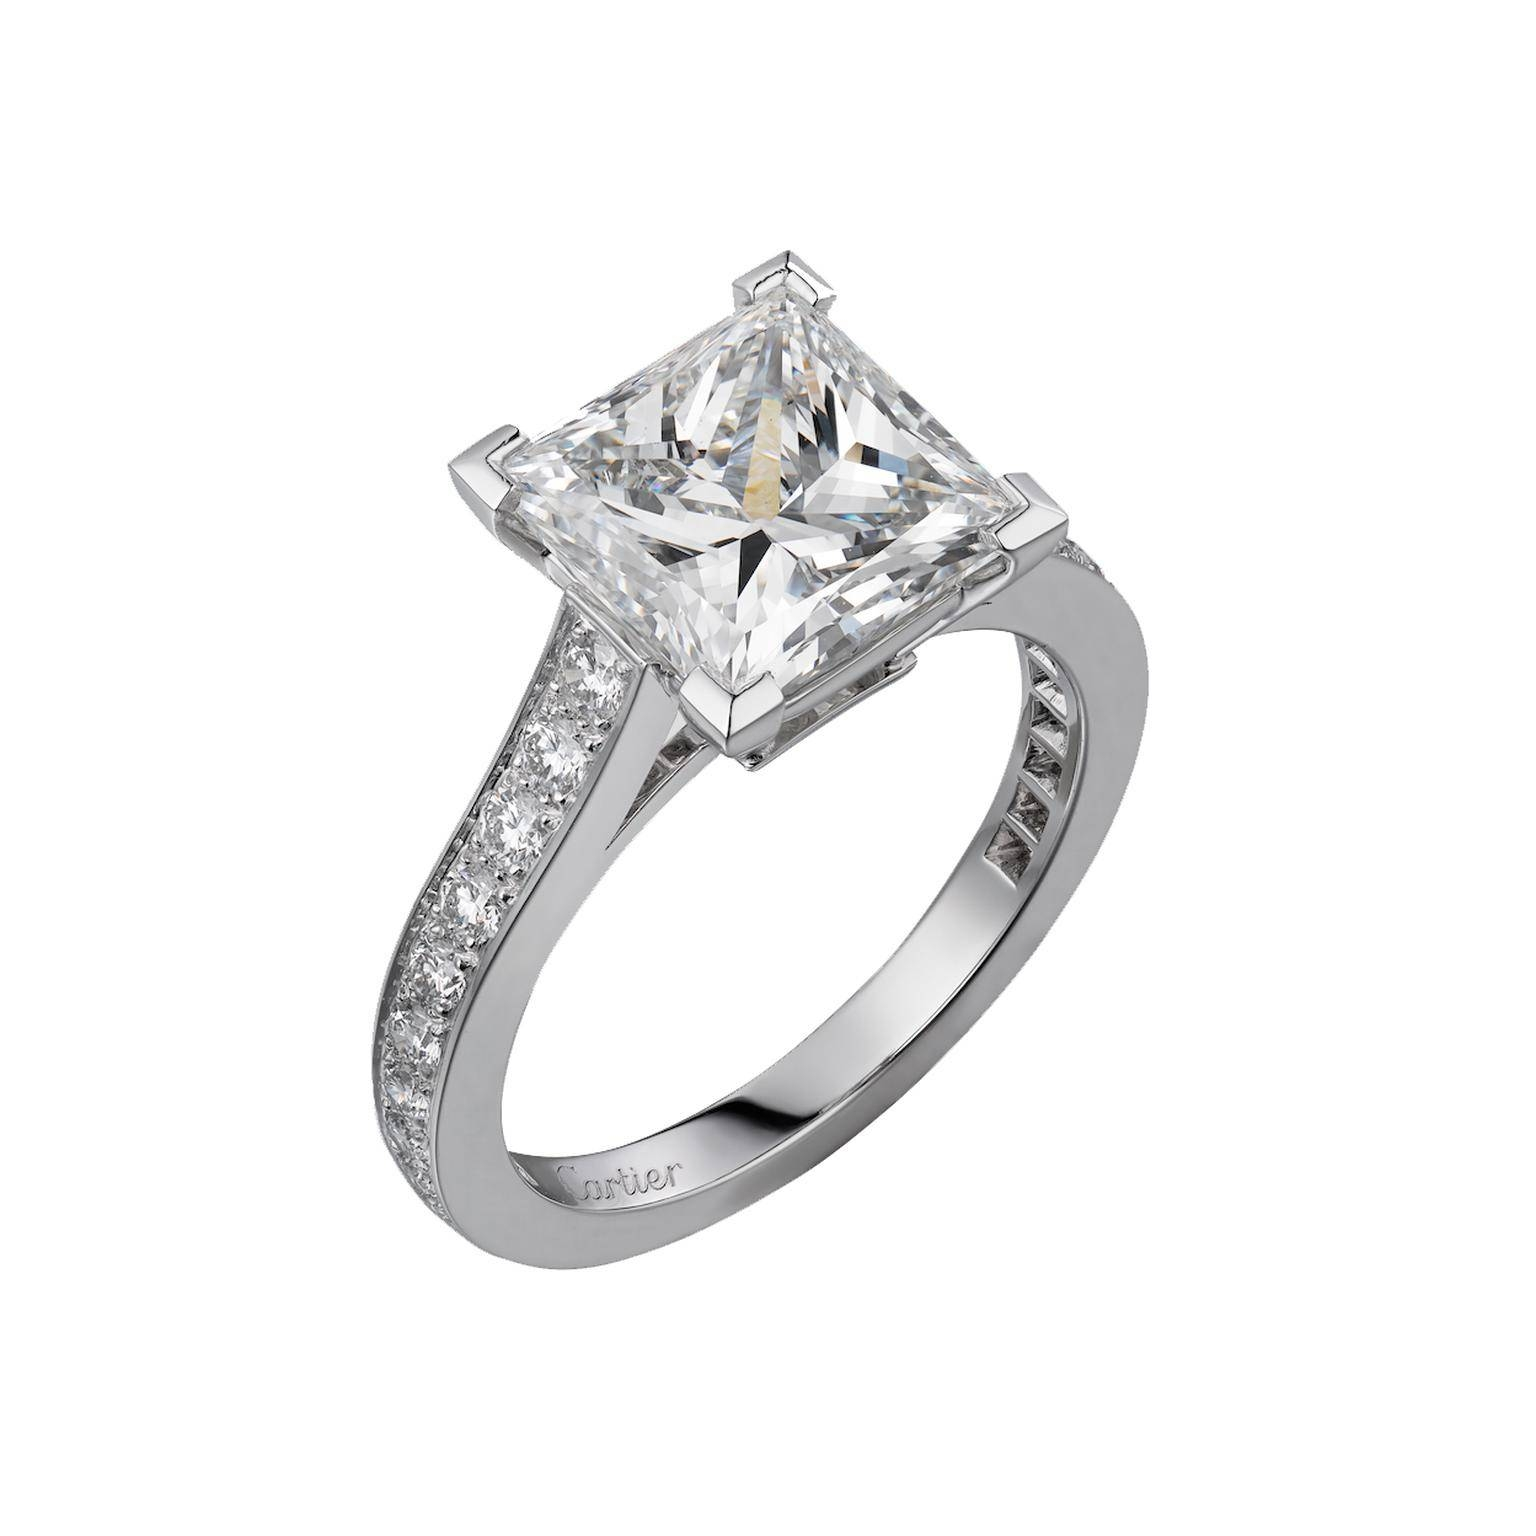 1895 Solitaire Princess Cut Diamond Engagement Ring | Cartier In Princess Shaped Engagement Rings (View 1 of 15)